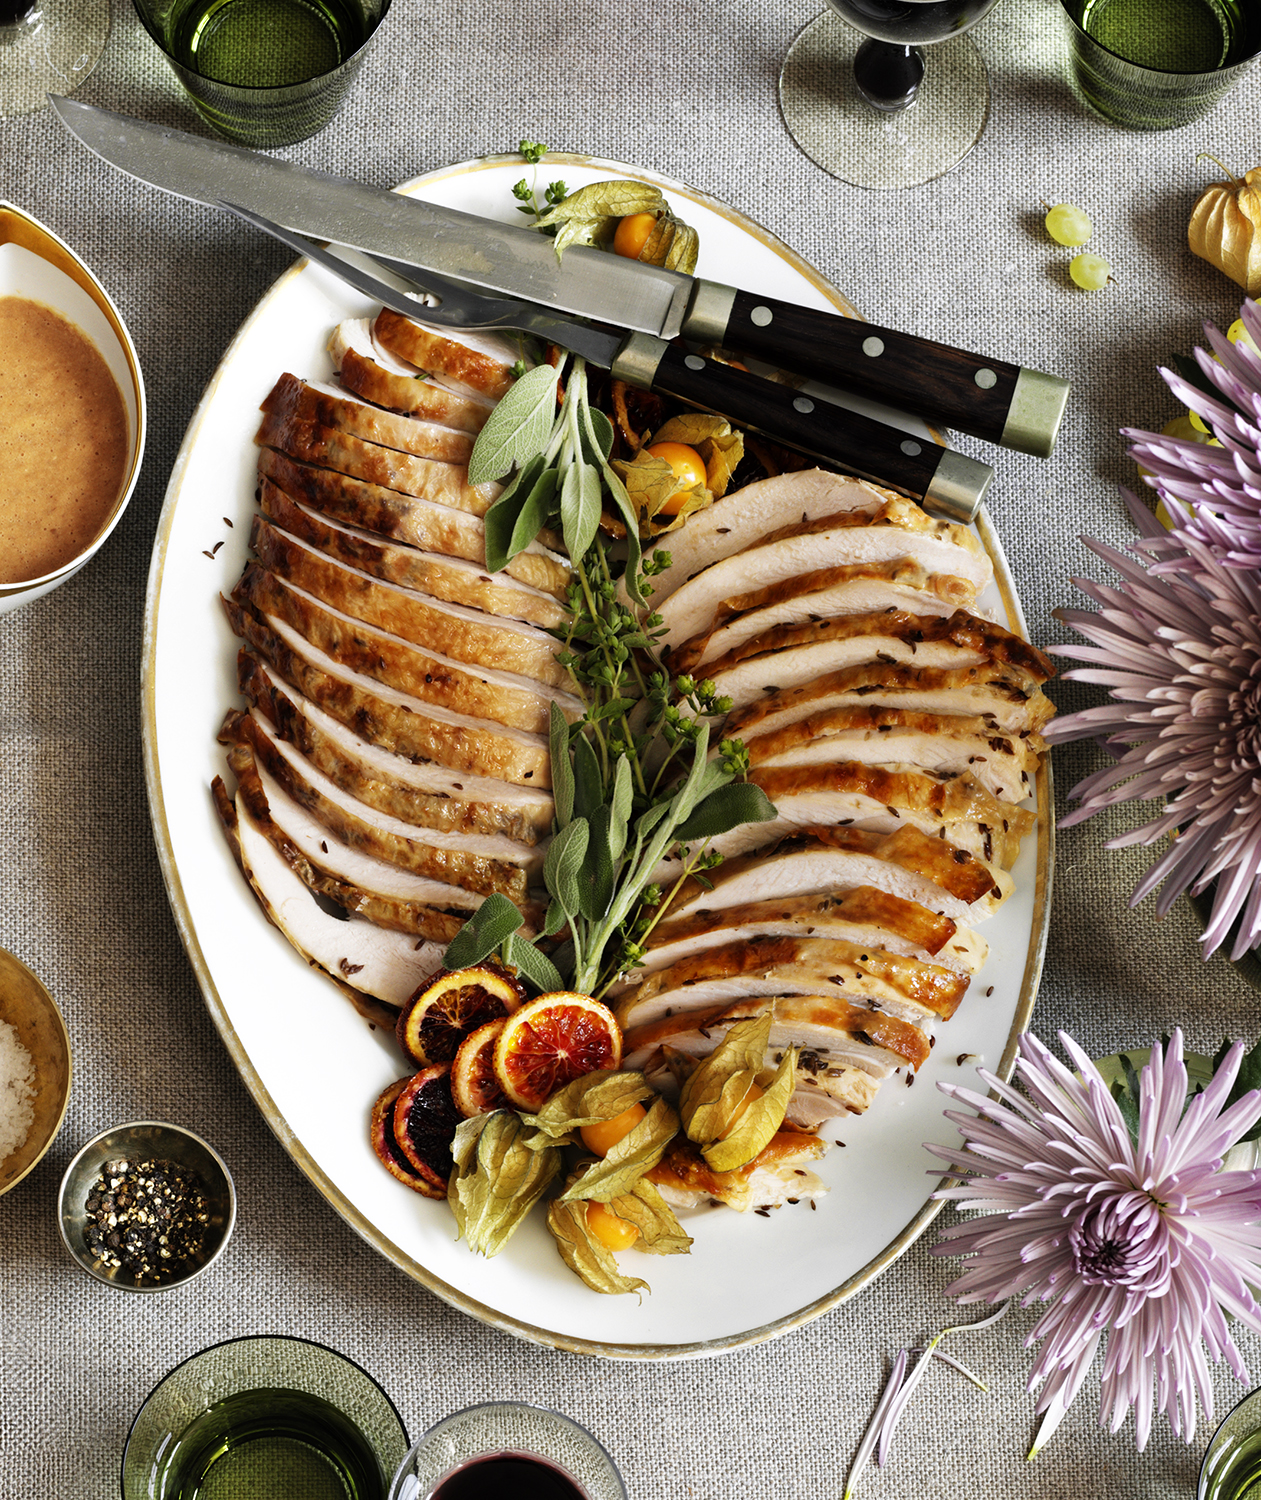 Roasted Turkey Breast With Caraway-Lemon Butter